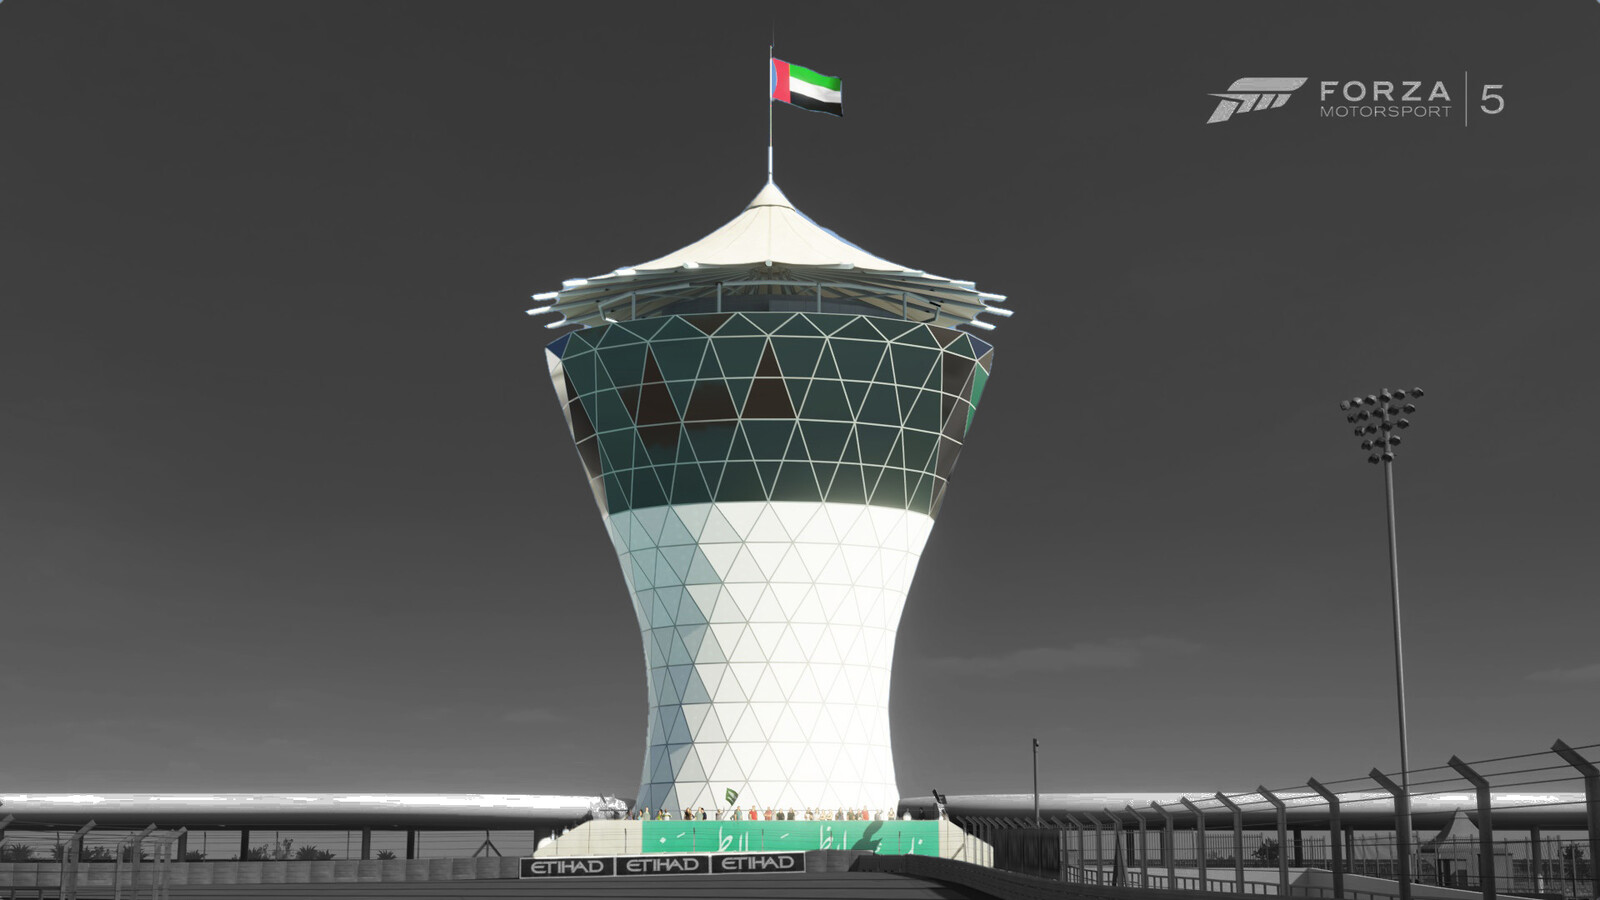 Forza 5 (2013) - Yas Marina, Royal Viewing Tower